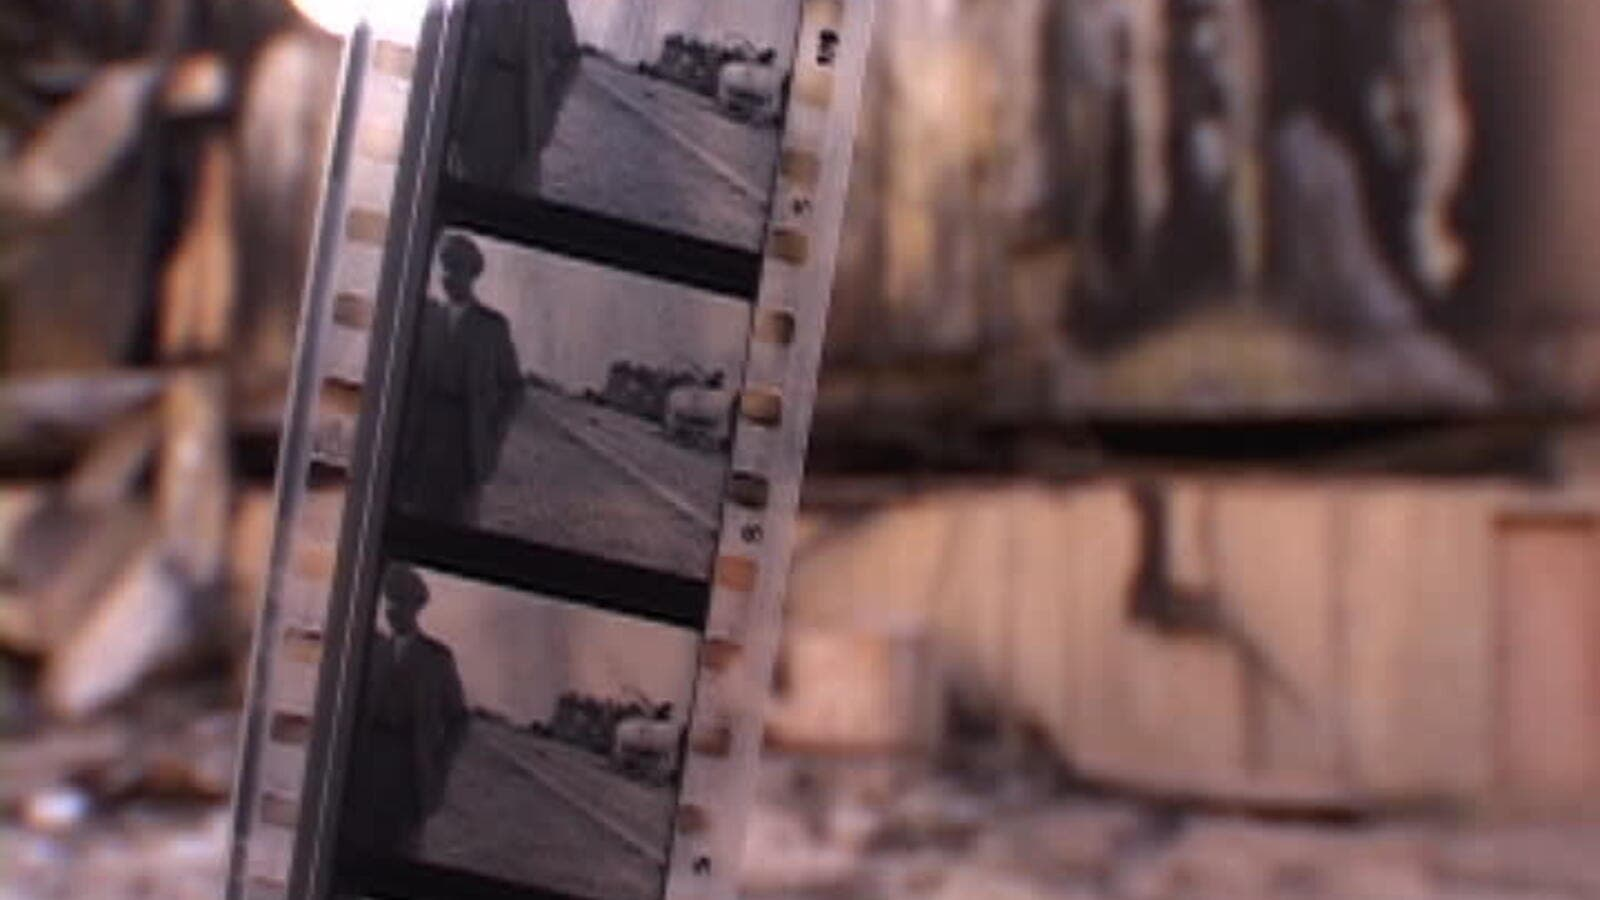 Strip of black and white movie film, out of focus bombed Baghdad Cinema Studios. (Shutterstock)